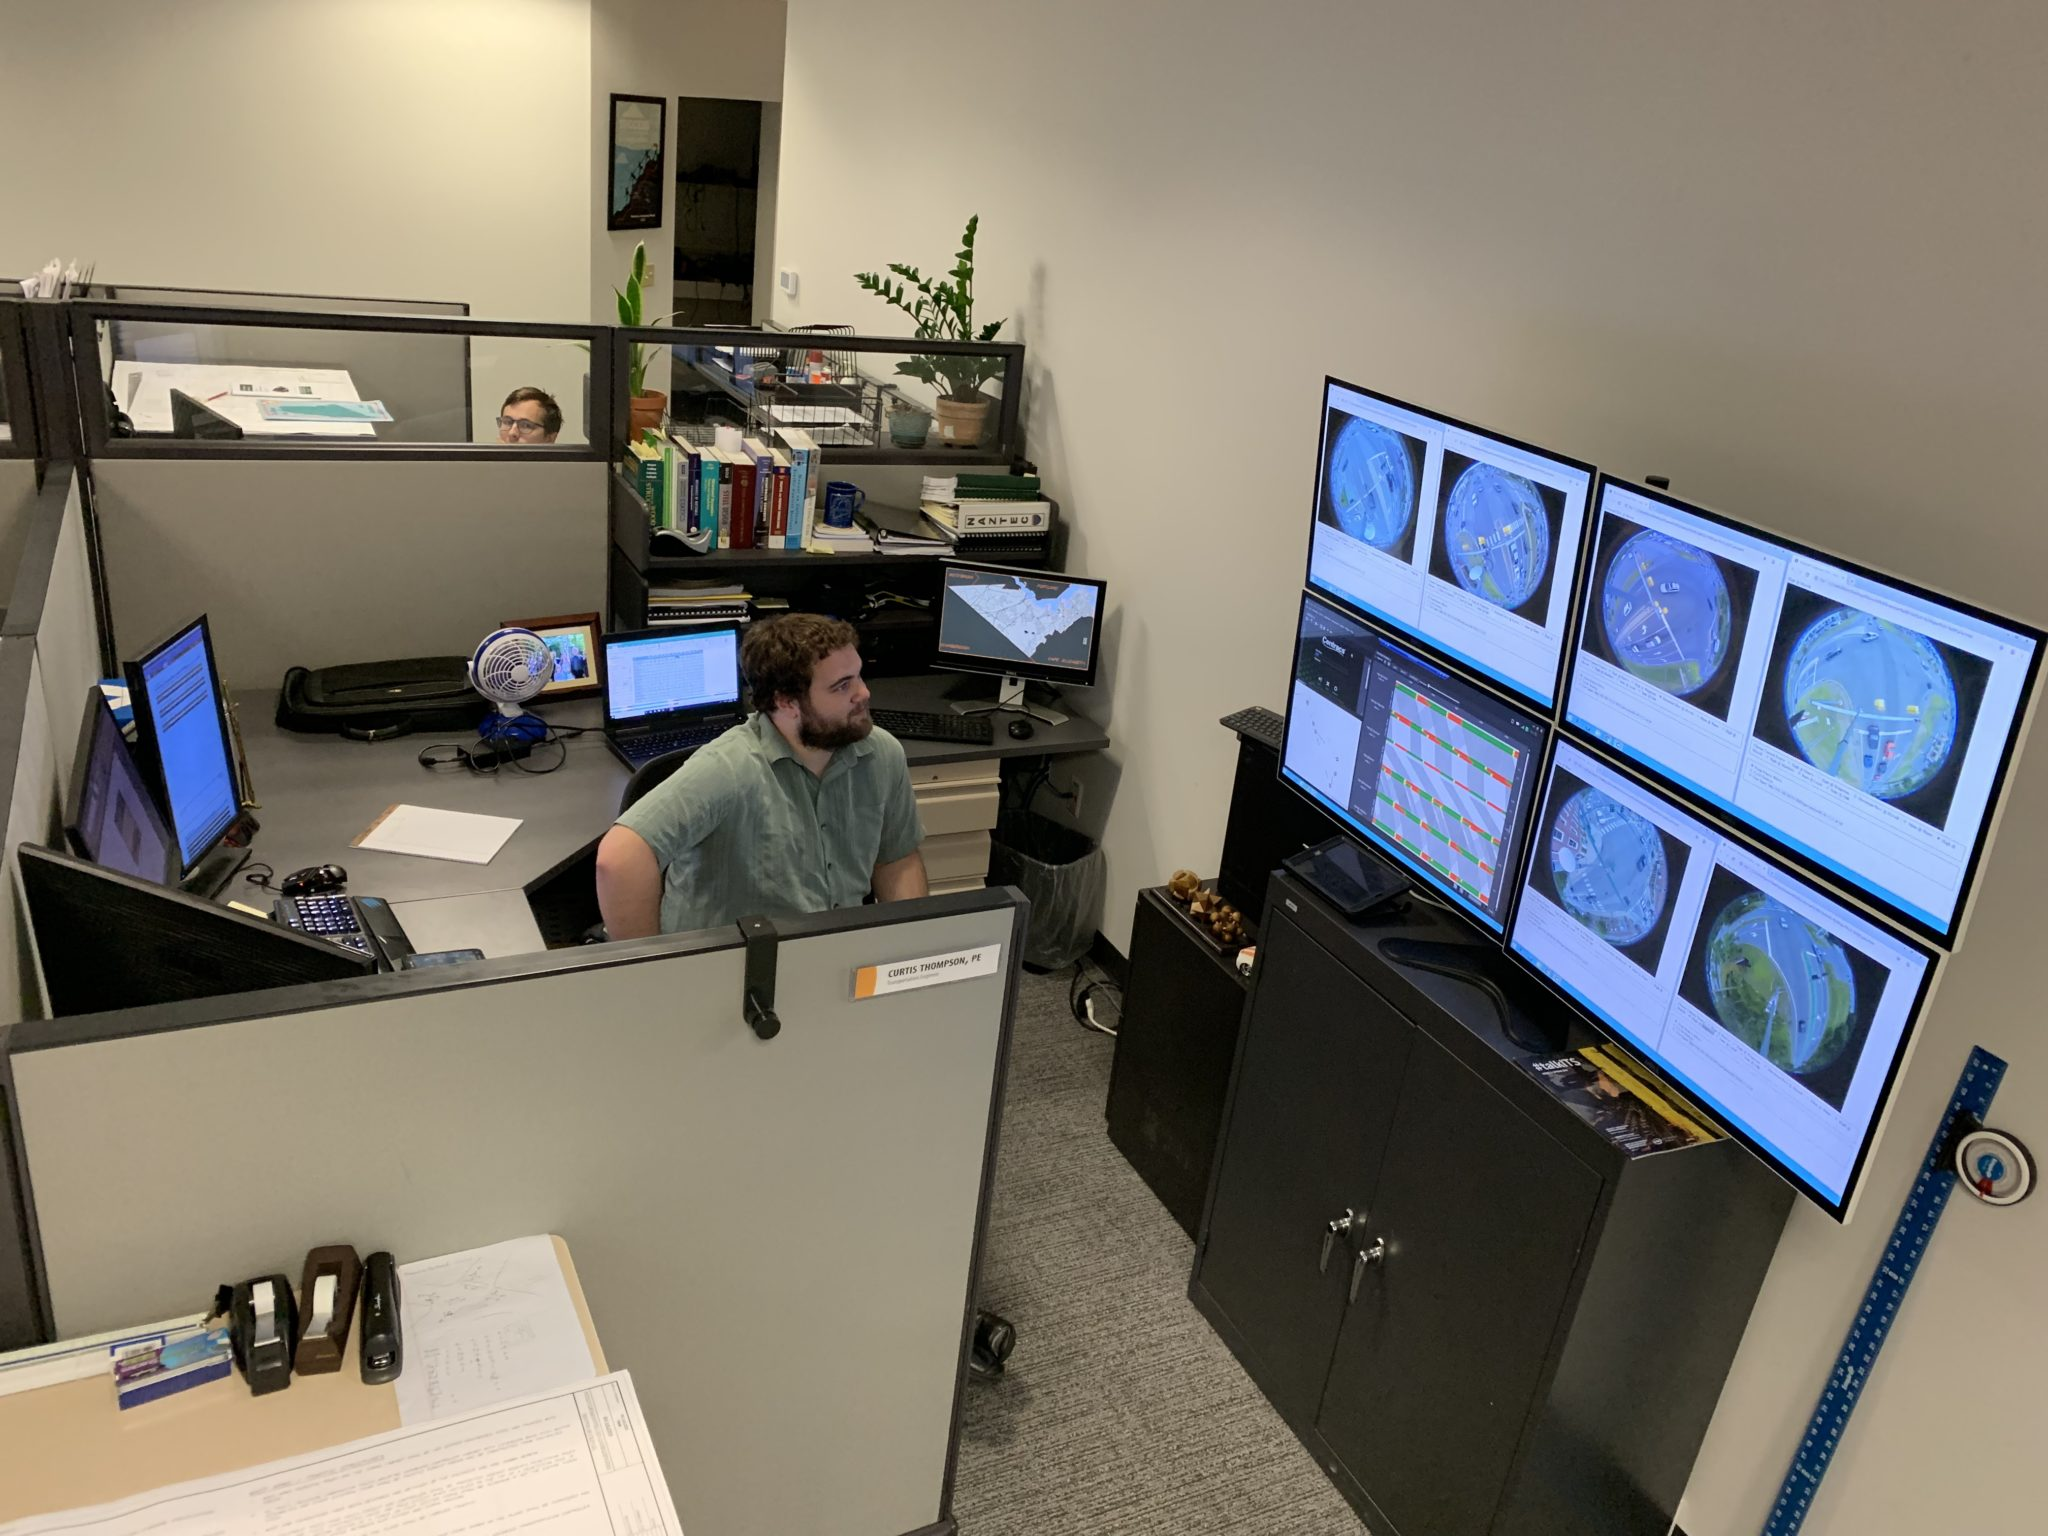 Curtis at Computers